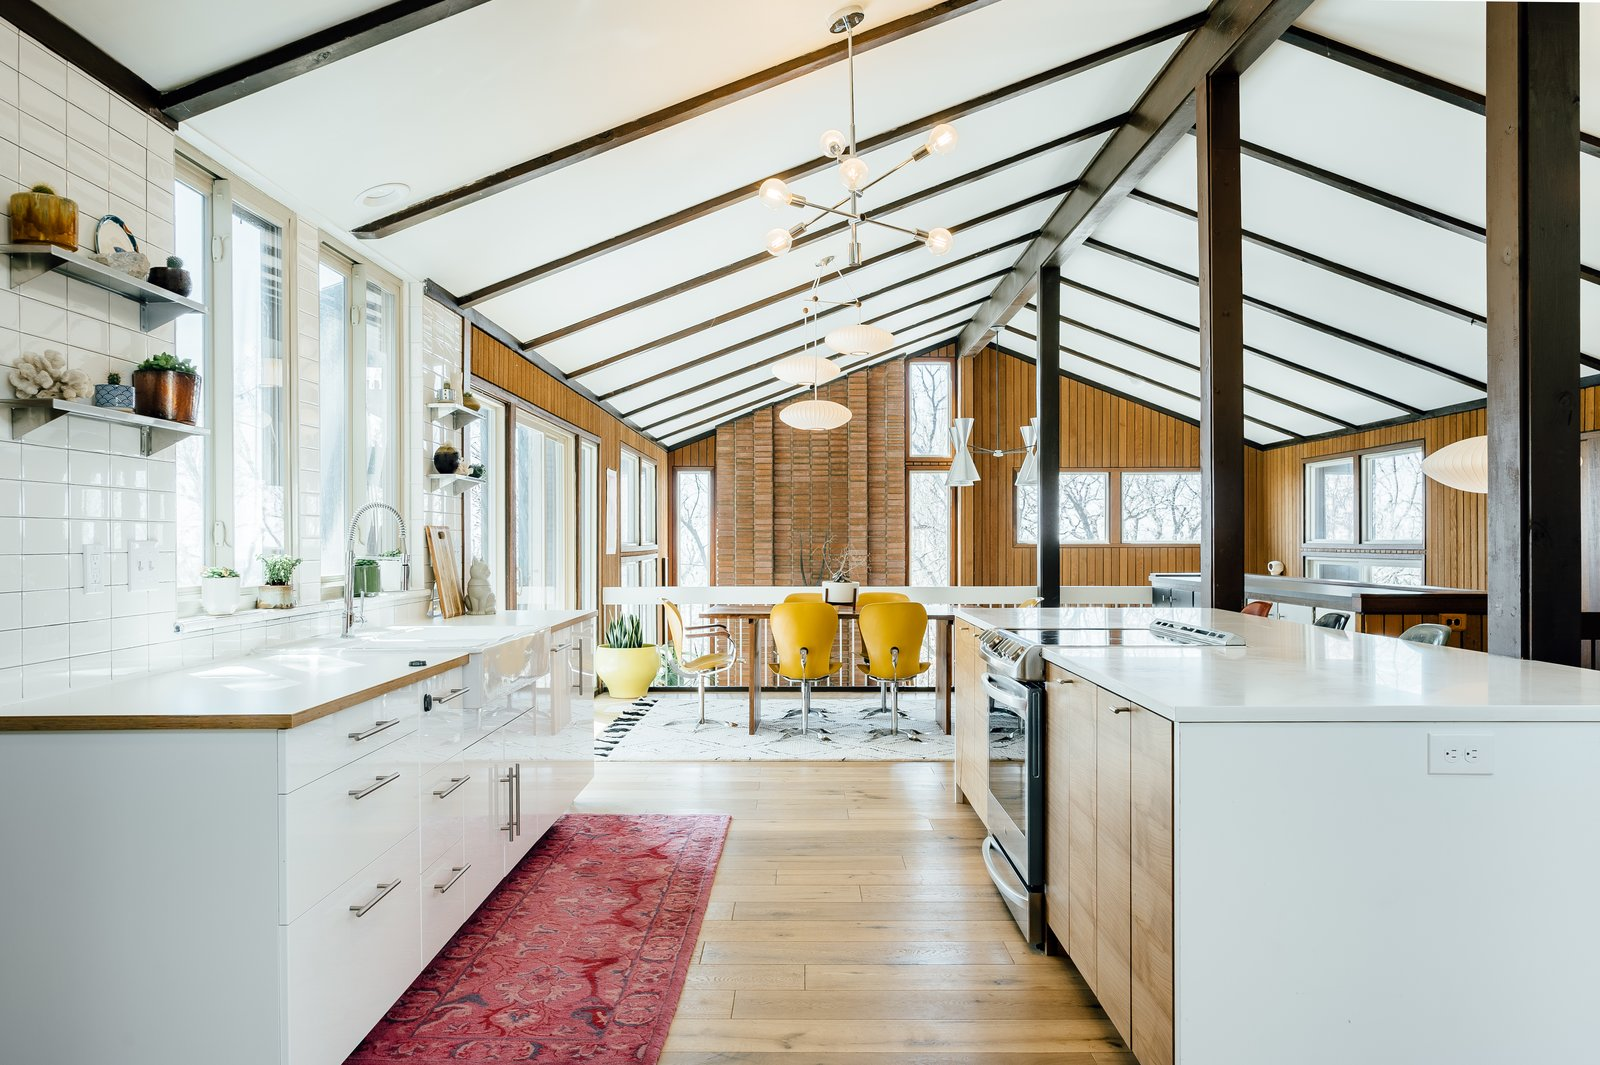 Kitchen, Pendant, Light Hardwood, Wood, Drop In, White, Rug, Porcelain Tile, Range, and Quartzite  Best Kitchen Light Hardwood Drop In Range Photos from A Midcentury Gem in Utah Is Listed For $550K